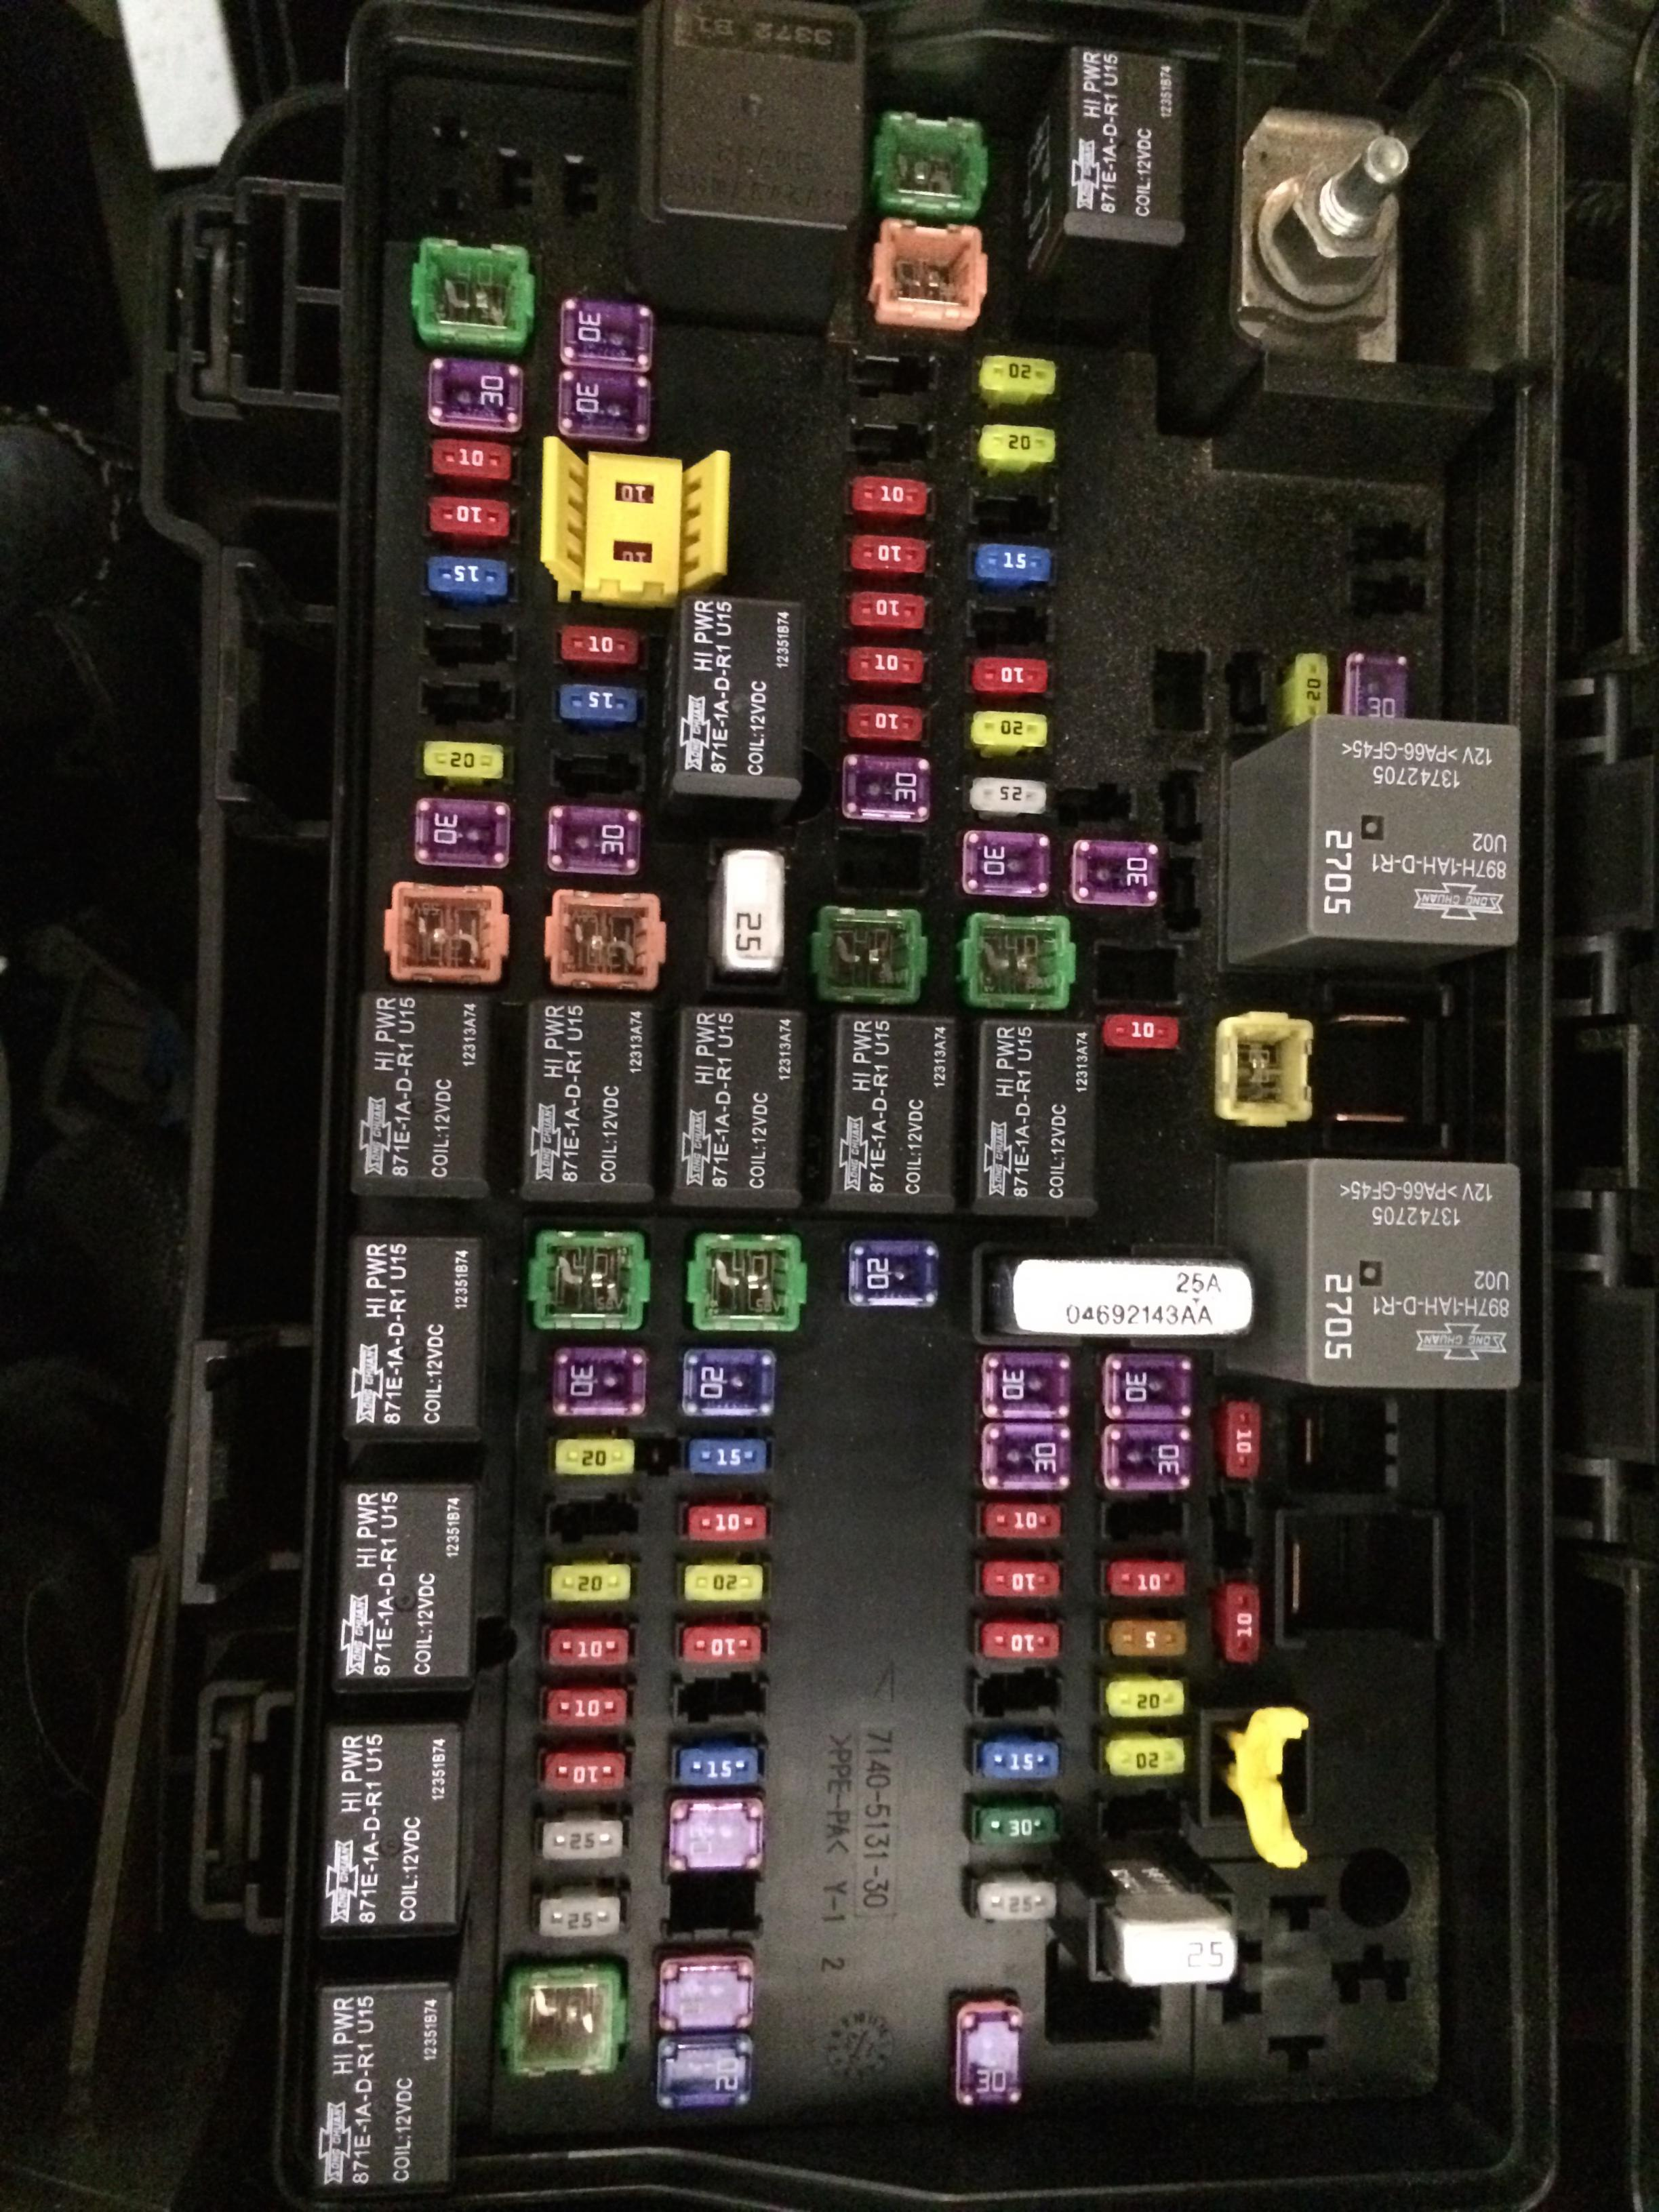 Dodge Fuse Box Diagram Locautions Wiring Library 2012 Ram Headlight 2014 3500 Schemes 1500 Cruise Control 2013